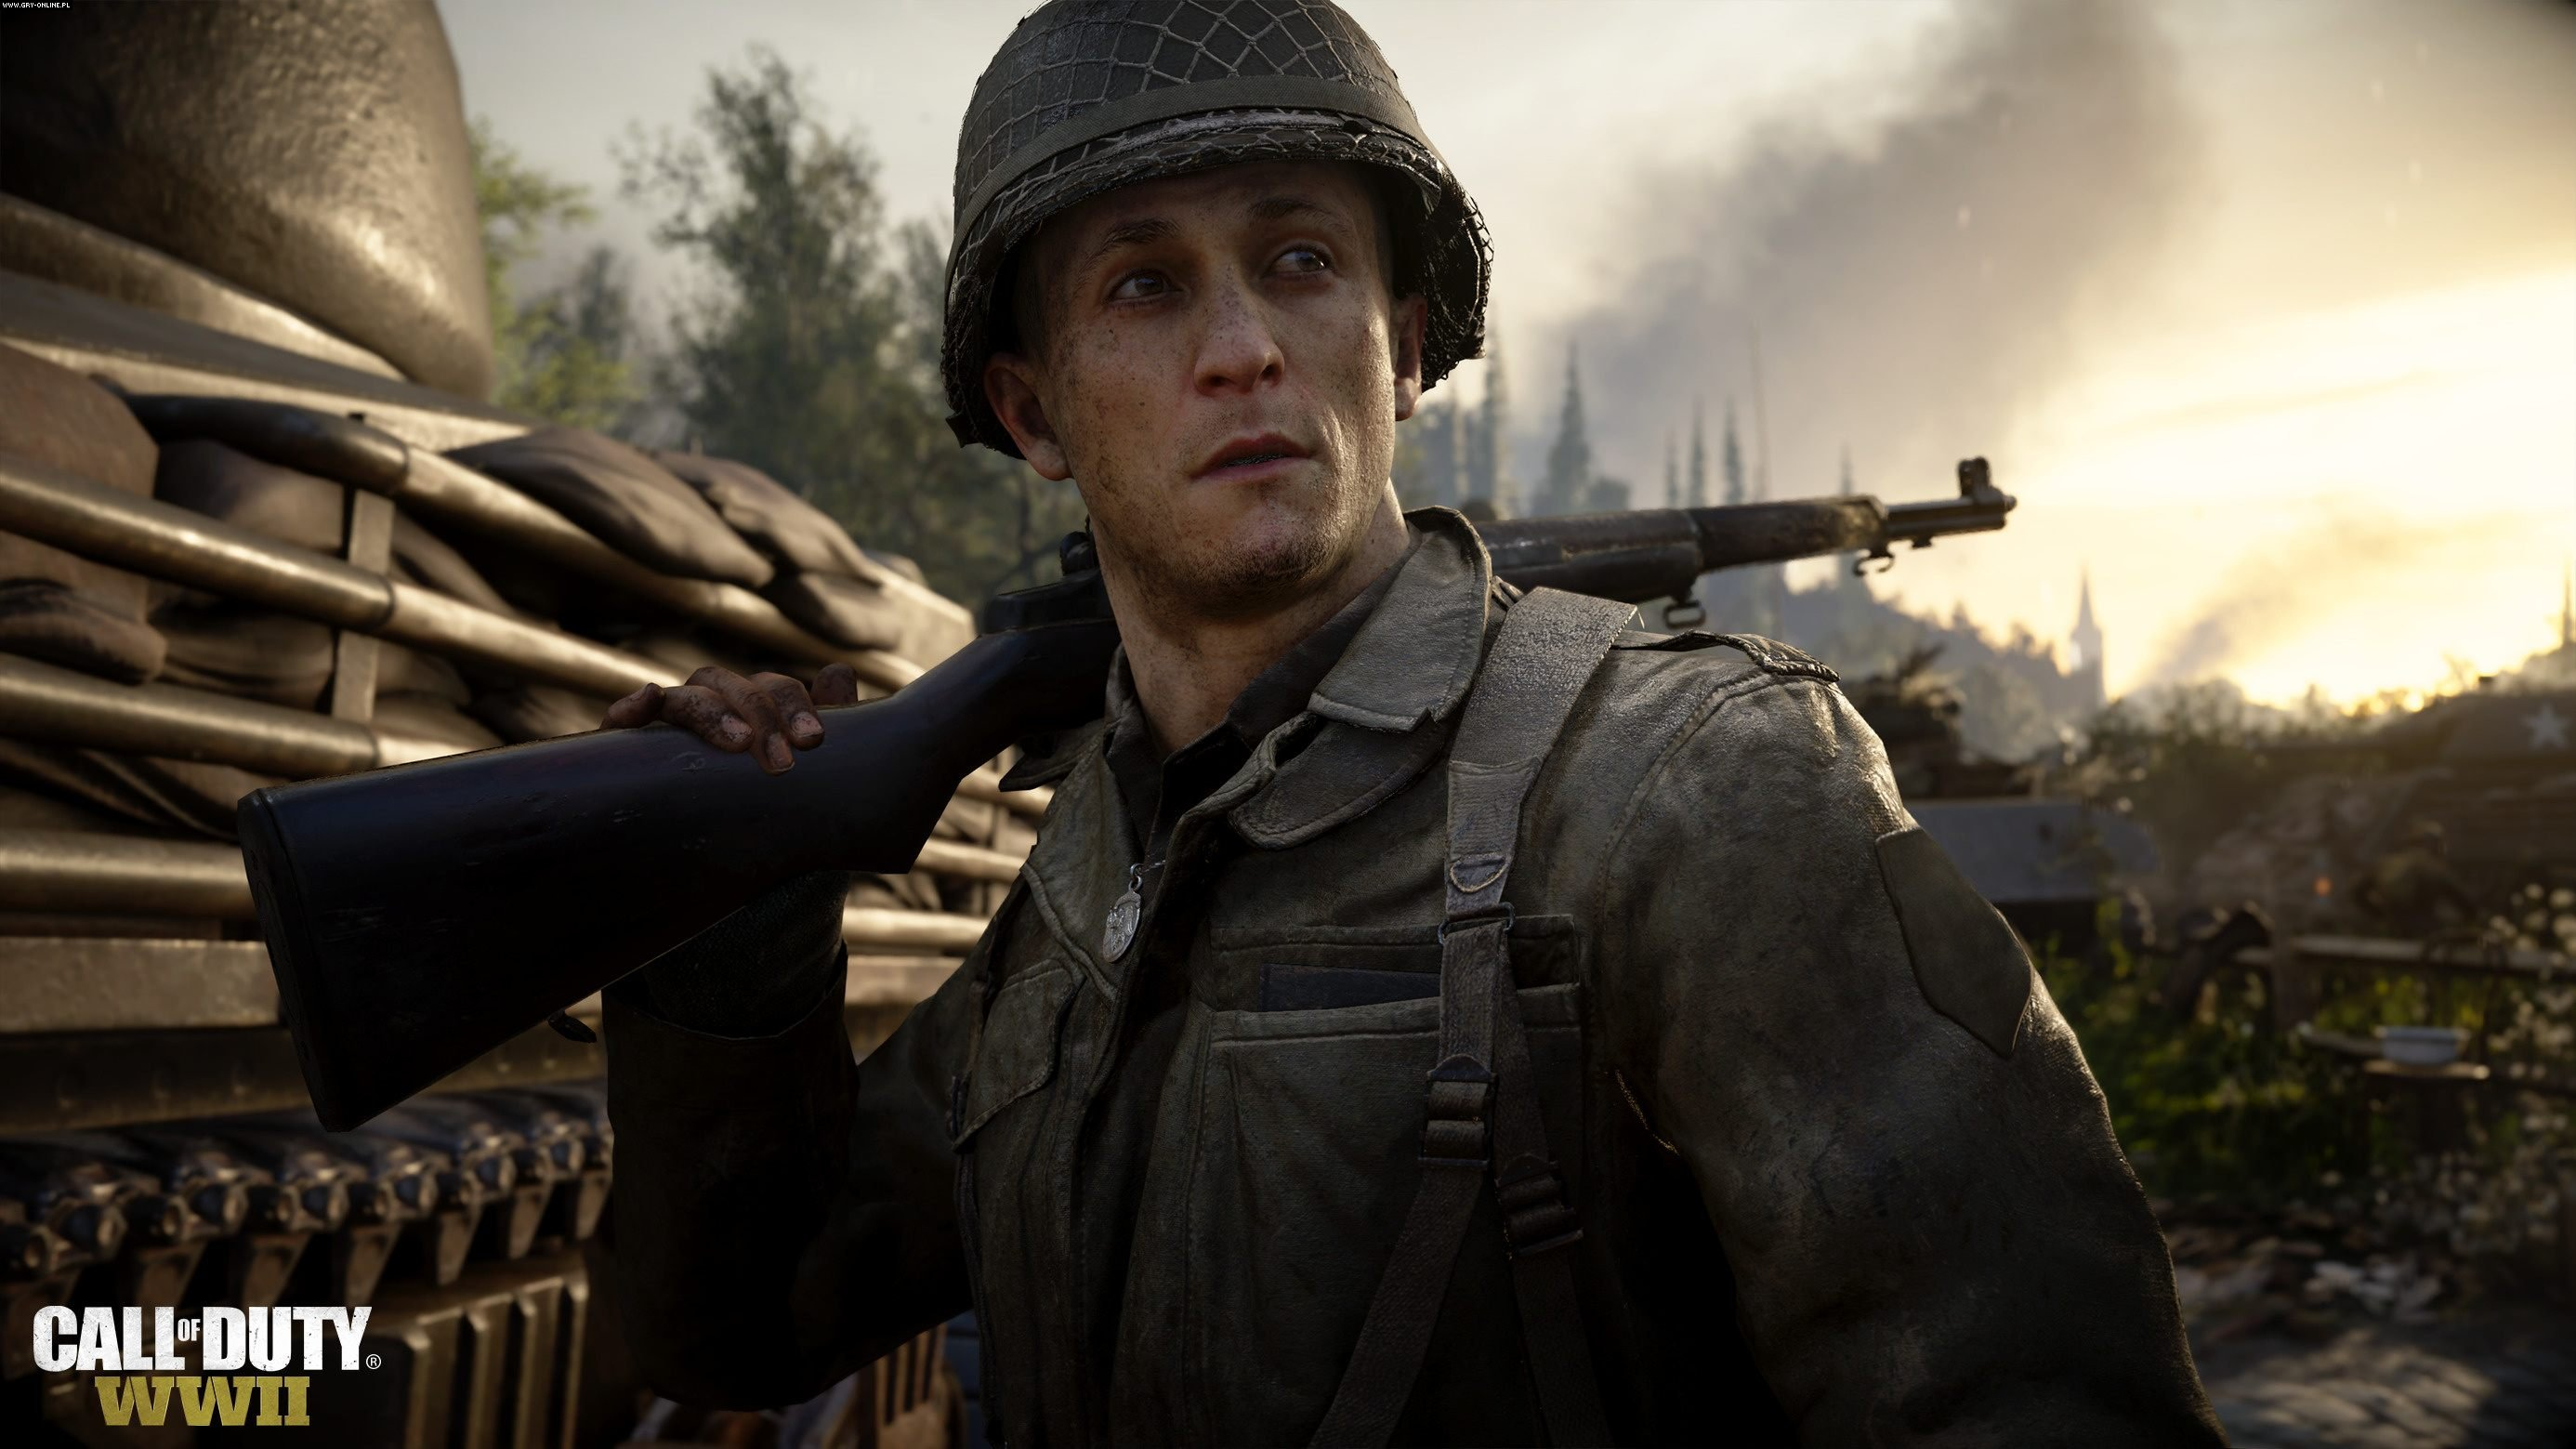 Call of Duty: WWII PC, PS4, XONE Games Image 12/35, Sledgehammer Games, Activision Blizzard